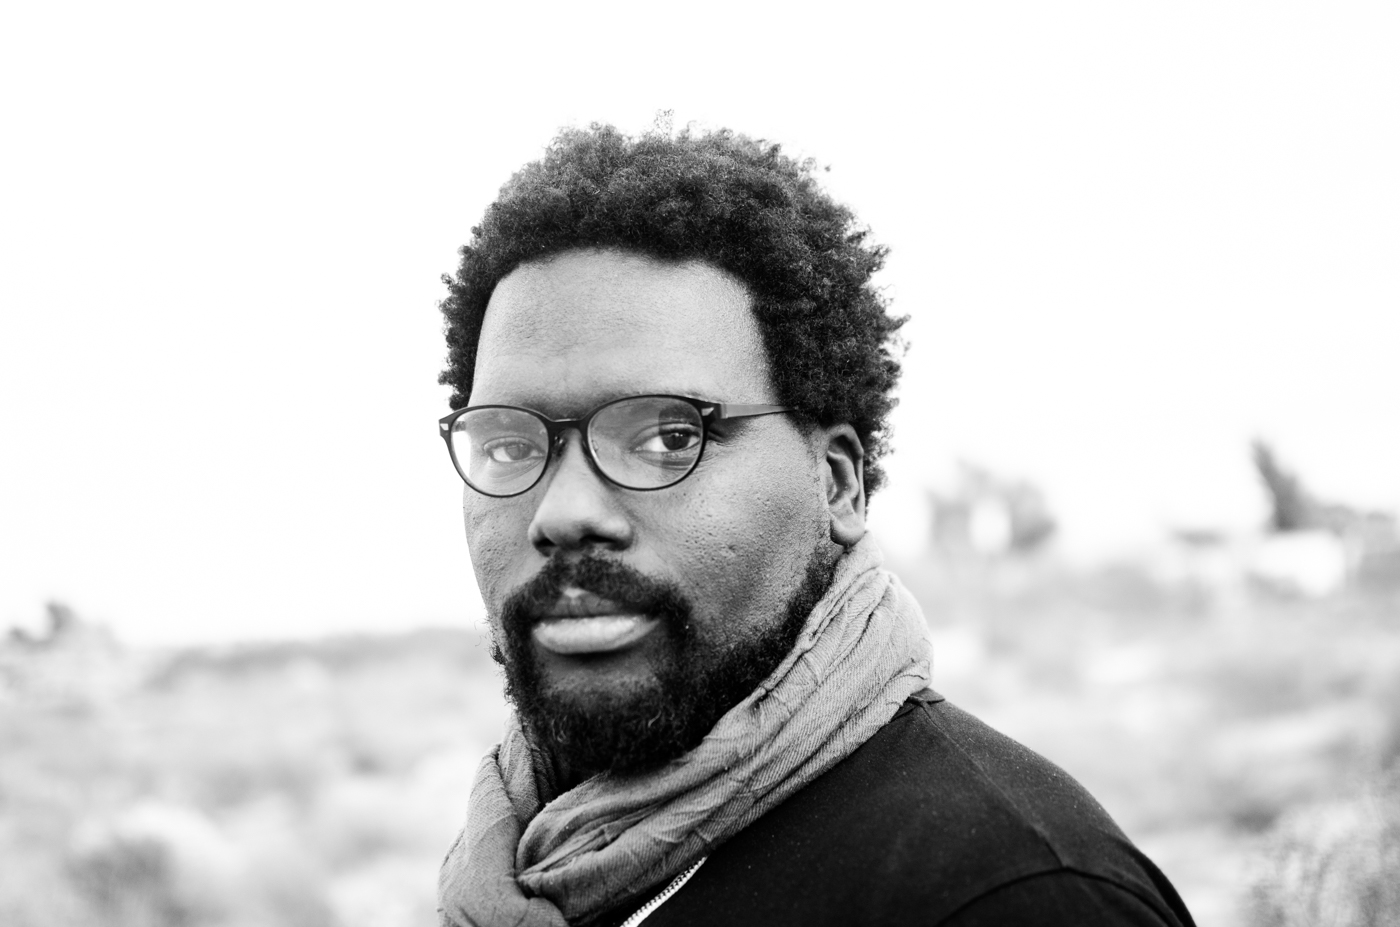 Aaron Johnson - Aaron Johnson is an earth builder, teacher of closeness, and activist. He graduated from the California Institute of the Arts in 2007 with a Bachelor of Fine Arts. He has made a lifelong commitment to use the skills he possesses to end racism. In addition to using intimacy and closeness to blackness as a primary means to that end, the tools he frequently uses are speaking, teaching, singing, photography, filmmaking, and minimalism. Aaron leads a mentoring program called Turn It Up Now that focuses on elevating the power, talent, love, and work ethic of youth. He believes that deep connection is one of the most powerful tools one can use in dismantling racism.